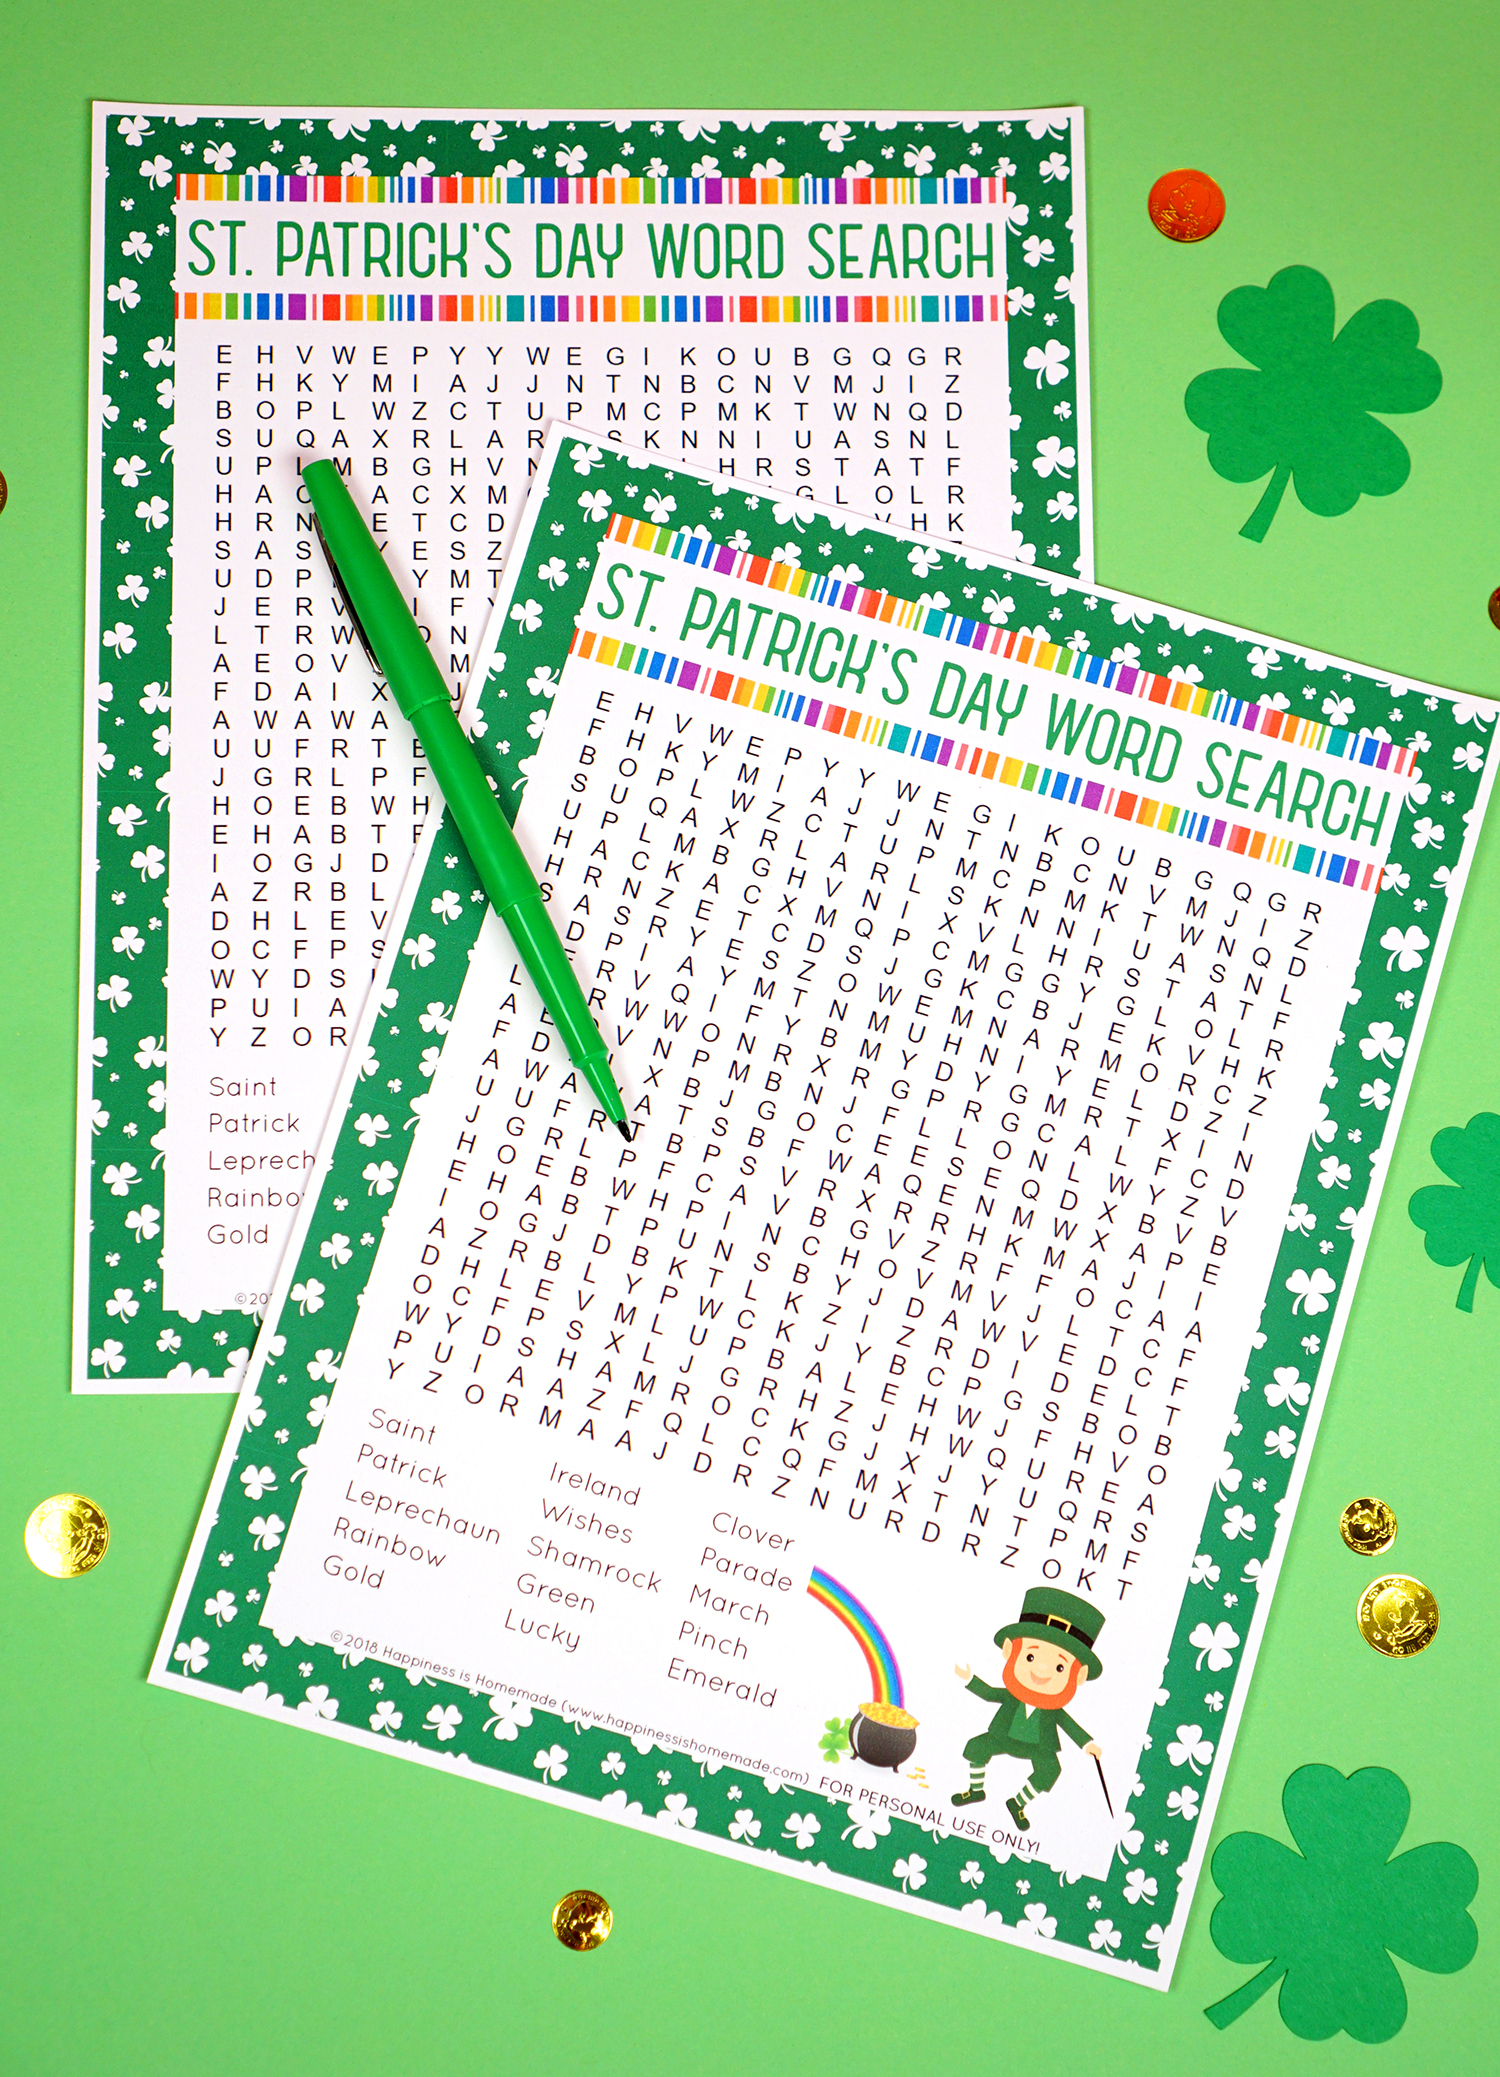 St. Patrick's Day Word Search Printable - Happiness Is Homemade - Free Printable St Patrick's Day Crossword Puzzles